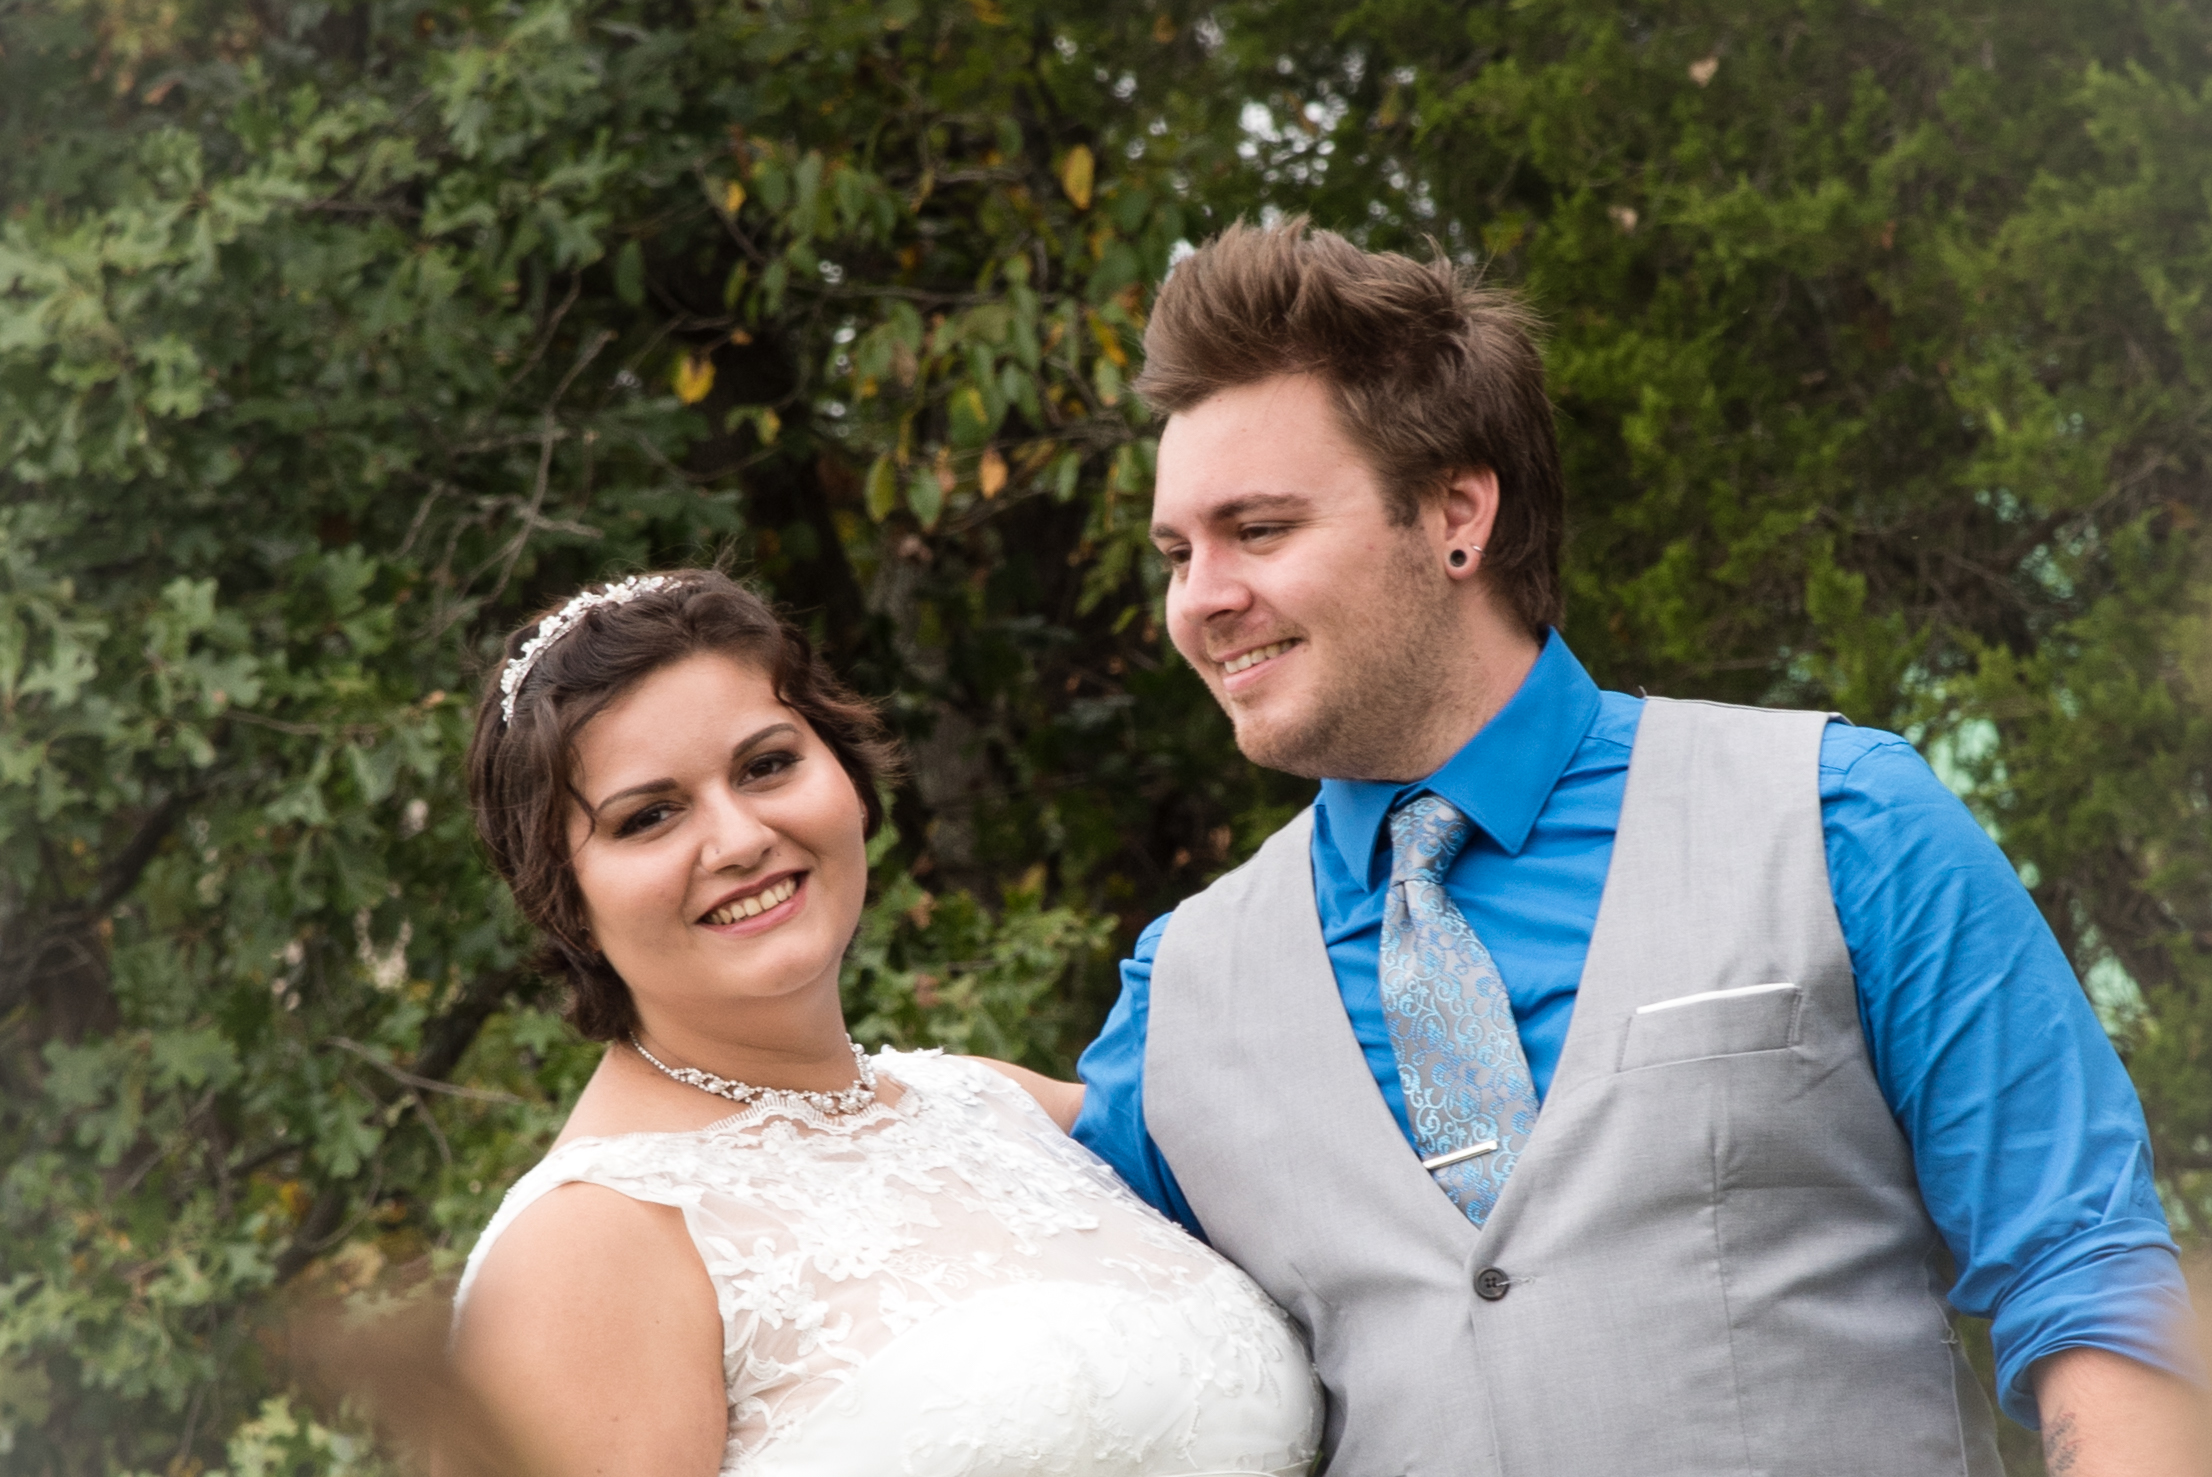 Tanner&Tiara_Wed-123.jpg